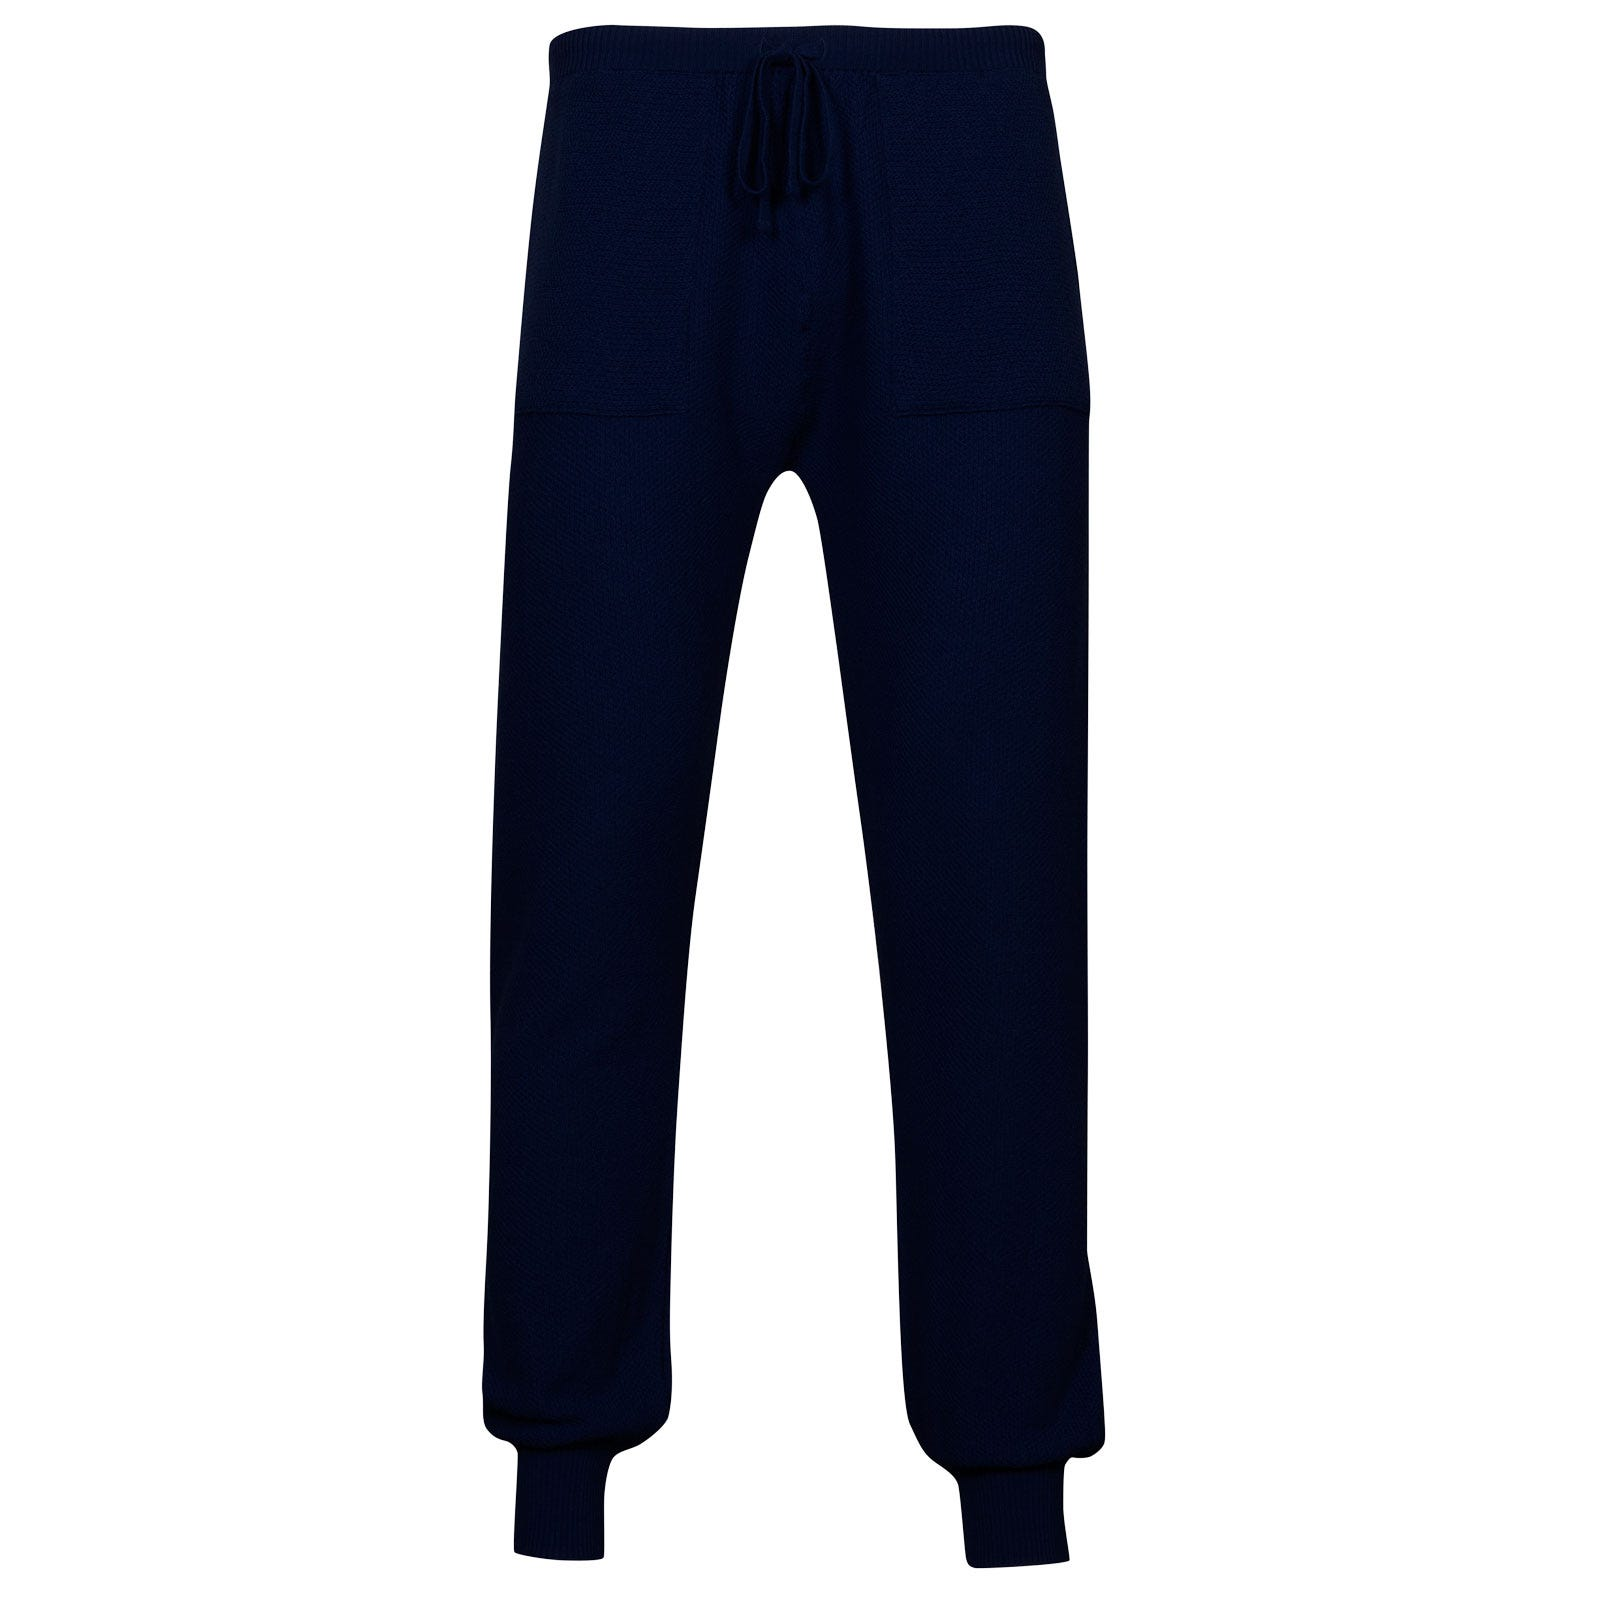 John Smedley 5Singular Merino Wool Trouser in Midnight-S